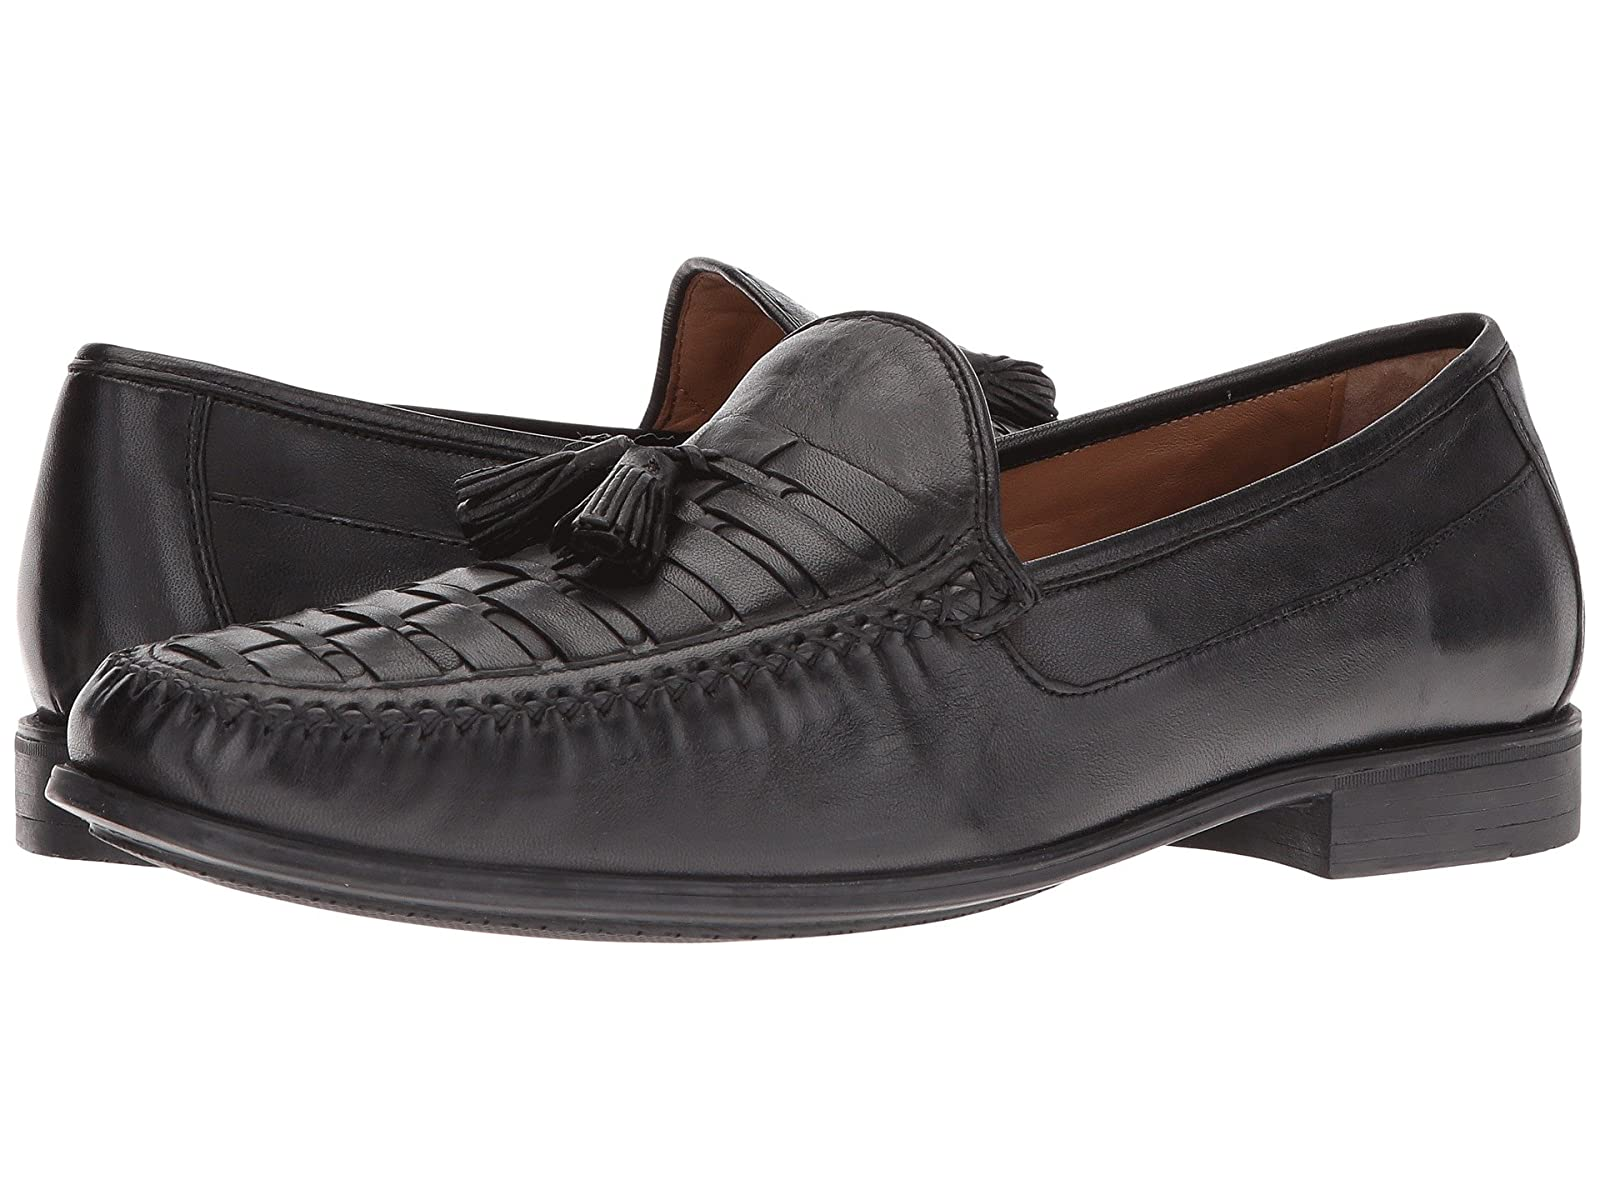 Johnston & Murphy Cresswell Woven Tassel Dress Slip-OnAtmospheric grades have affordable shoes